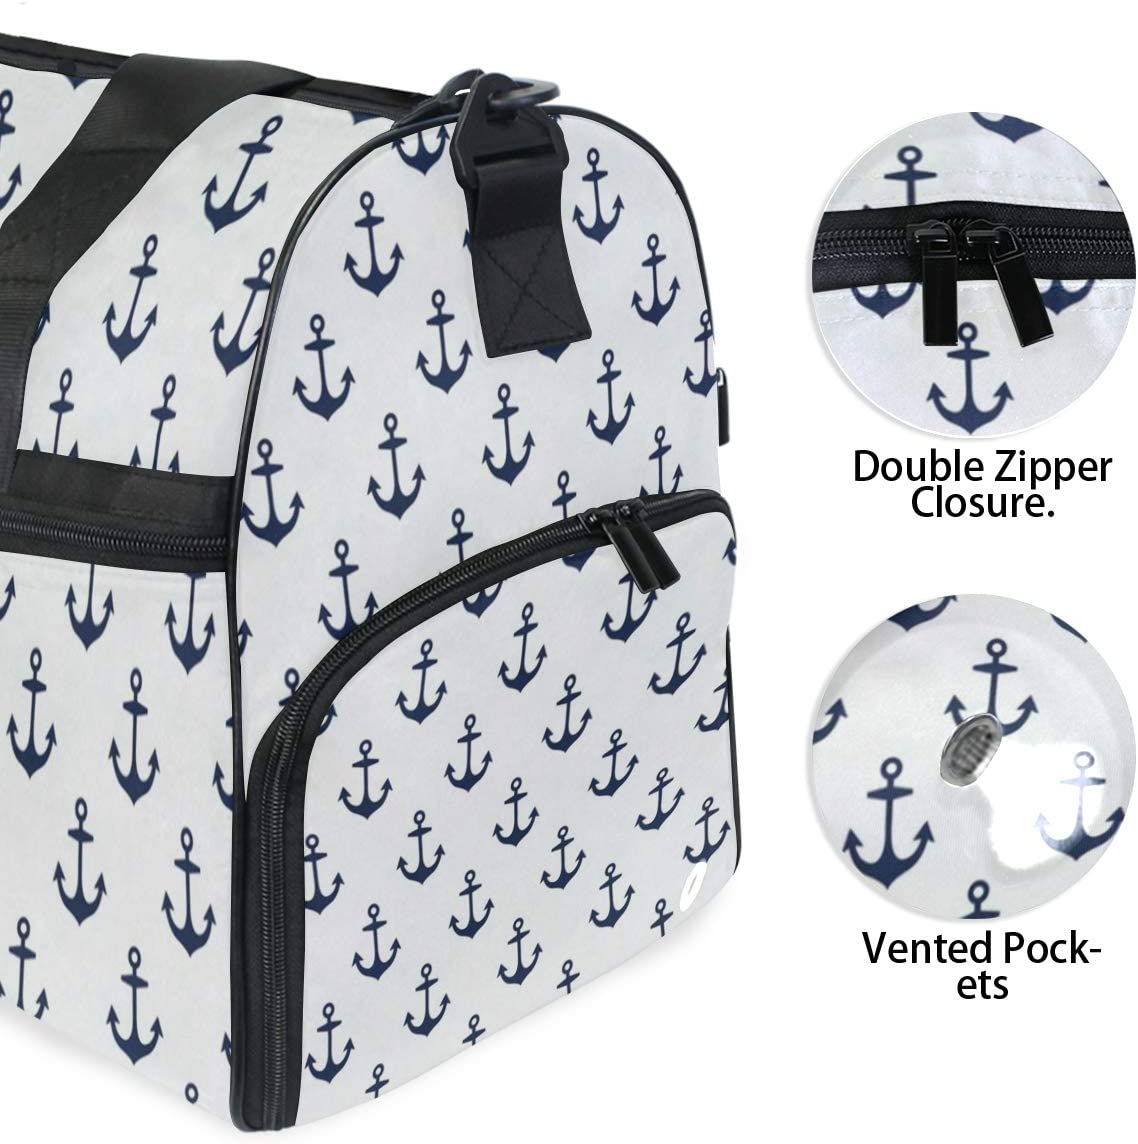 Blue Sea Sports Gym Bag with Shoes Compartment Travel Duffel Bag for Men Women